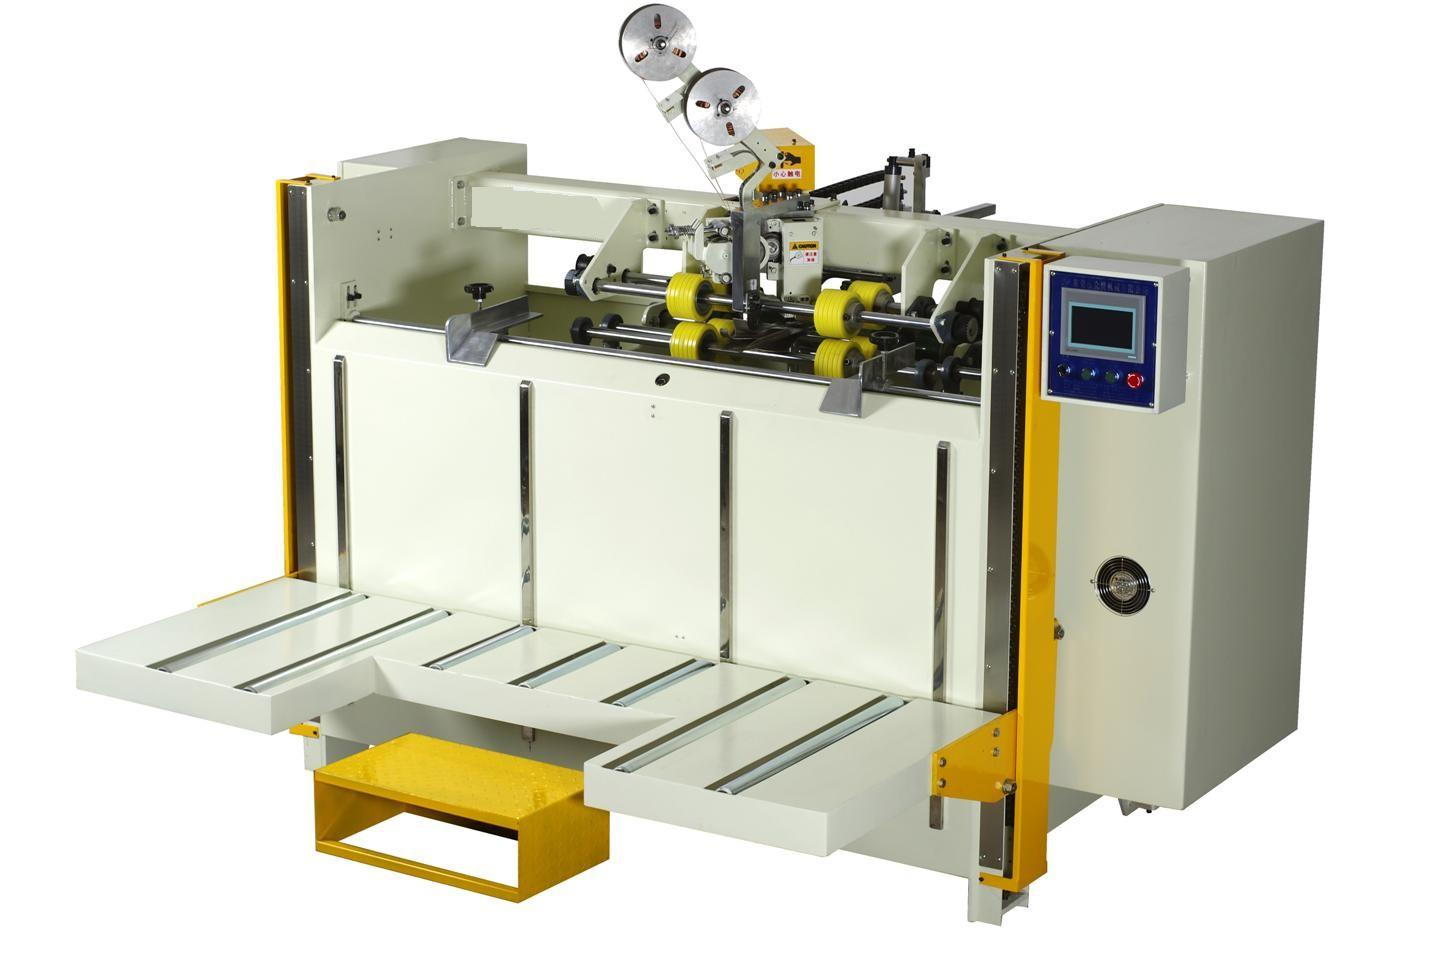 Carton stitching machine